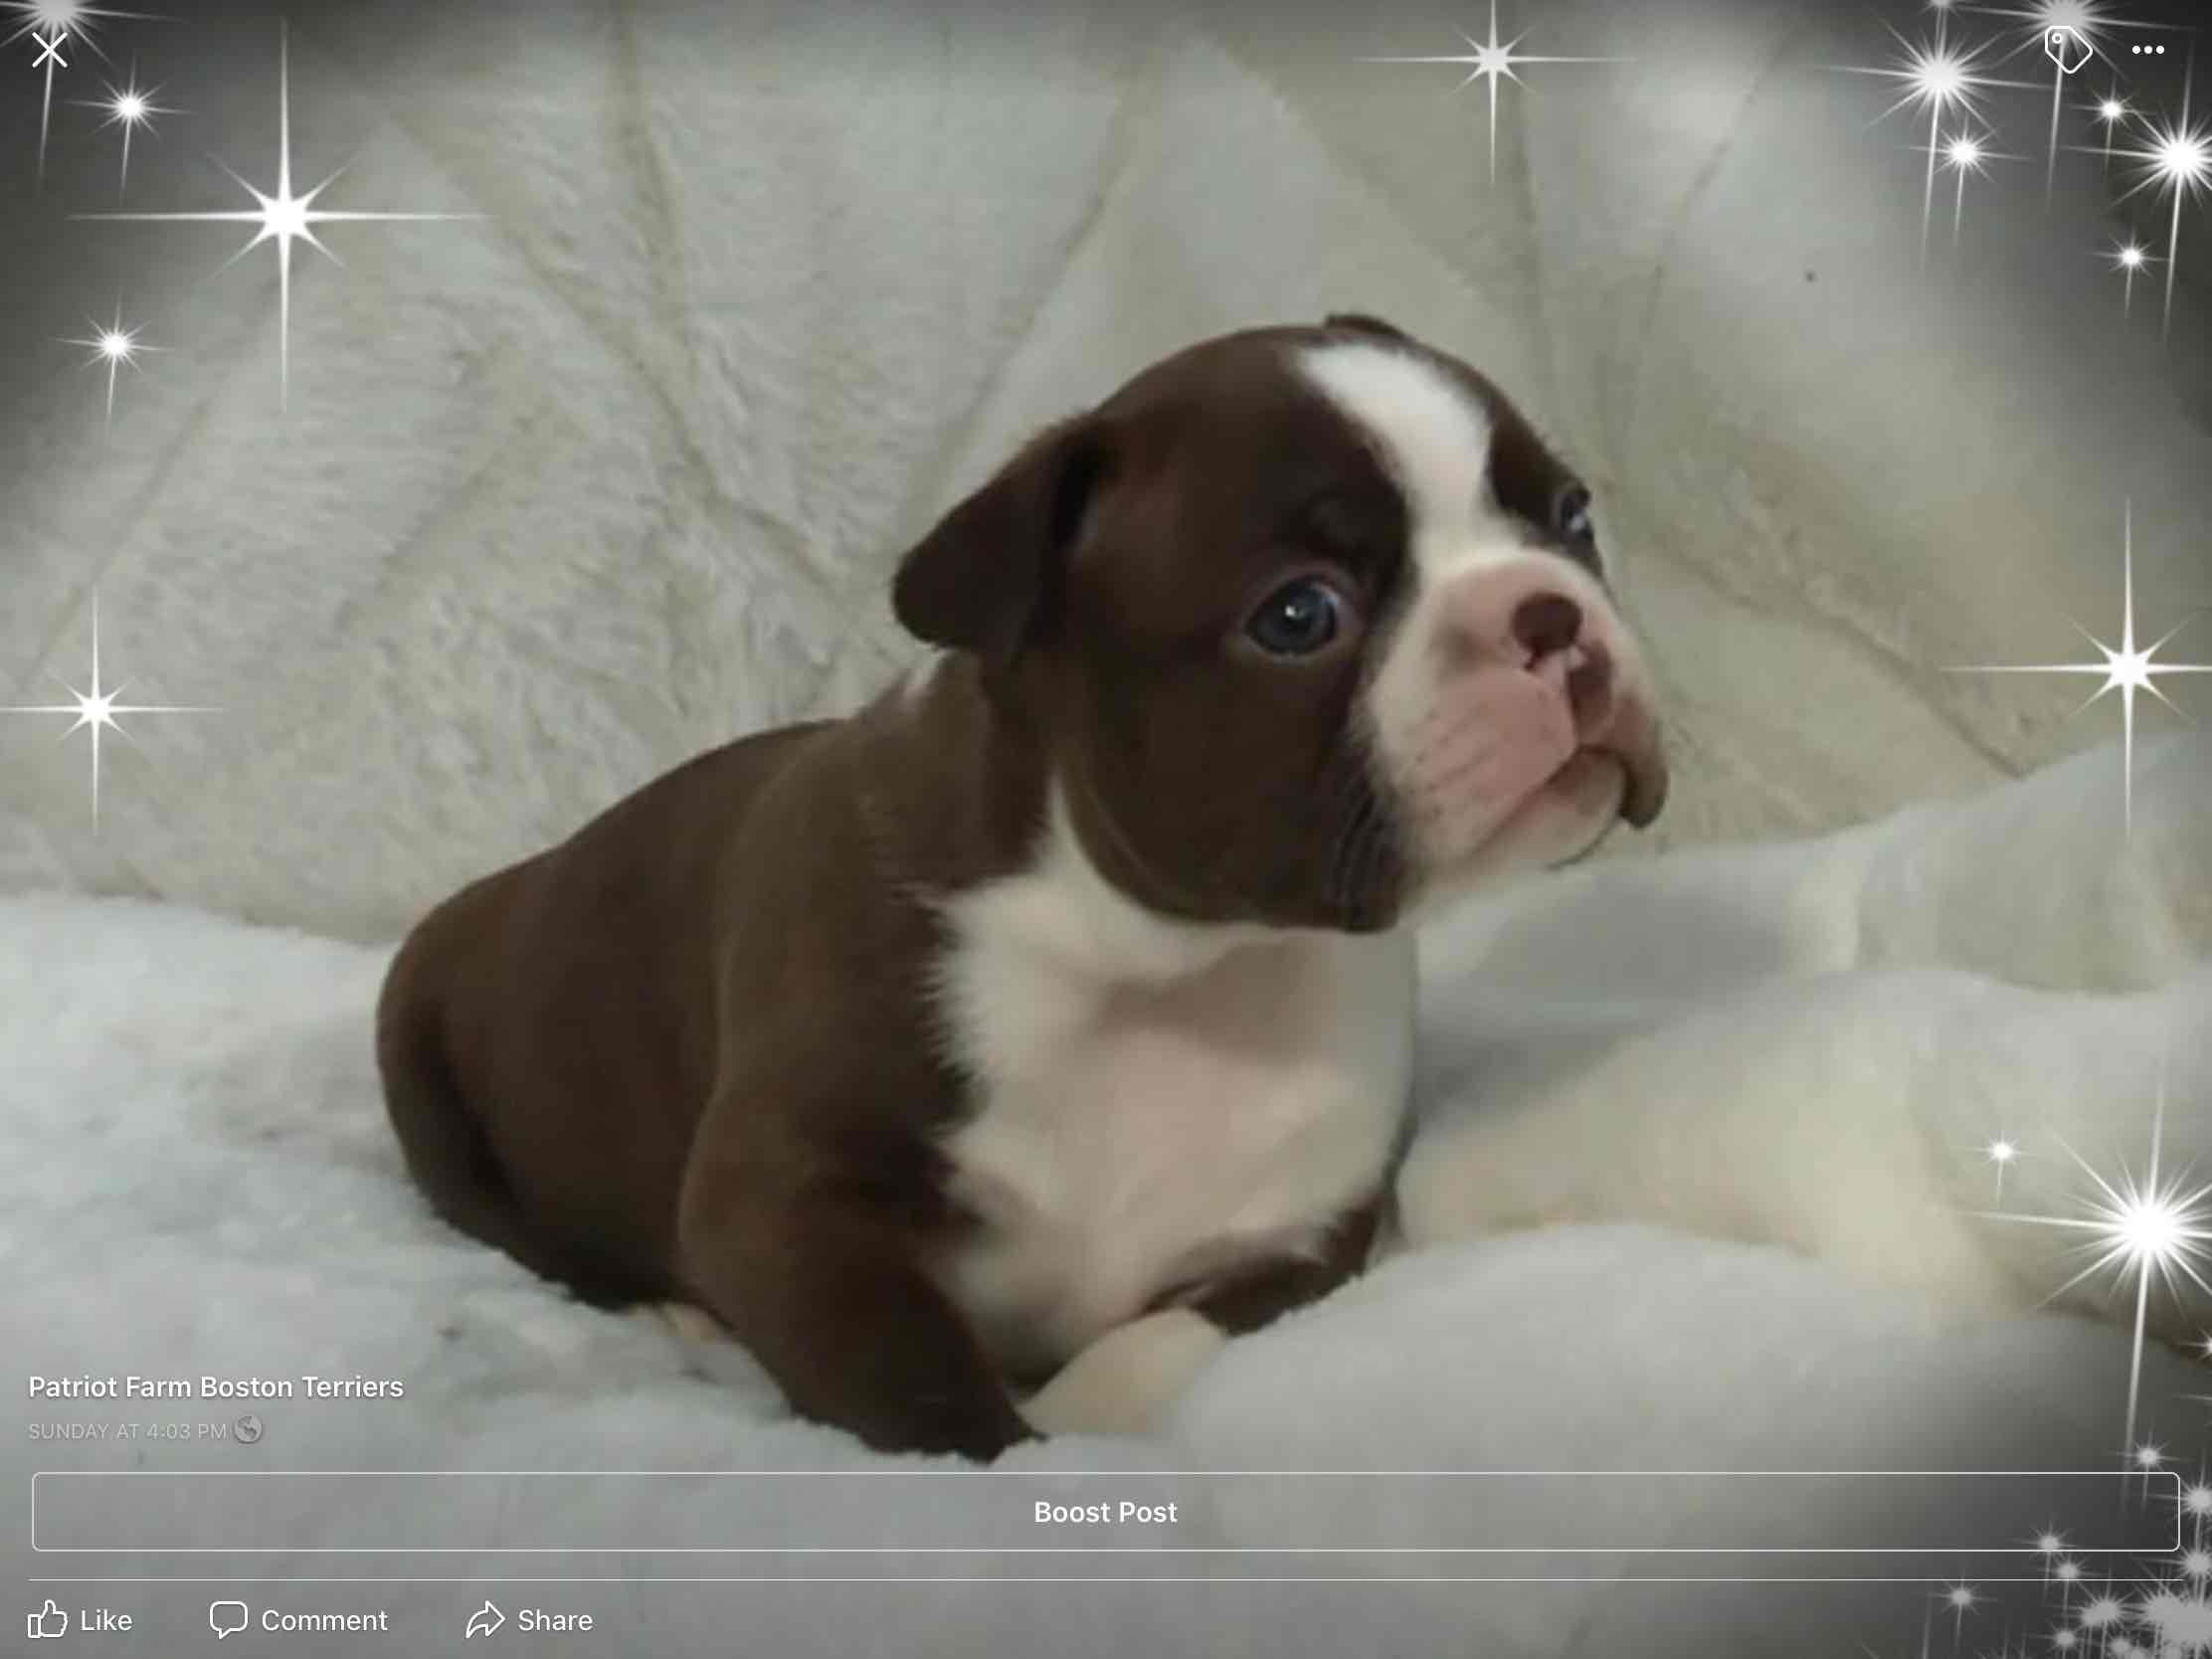 Patriot Farm Boston Terriers Has Boston Terrier Puppies For Sale